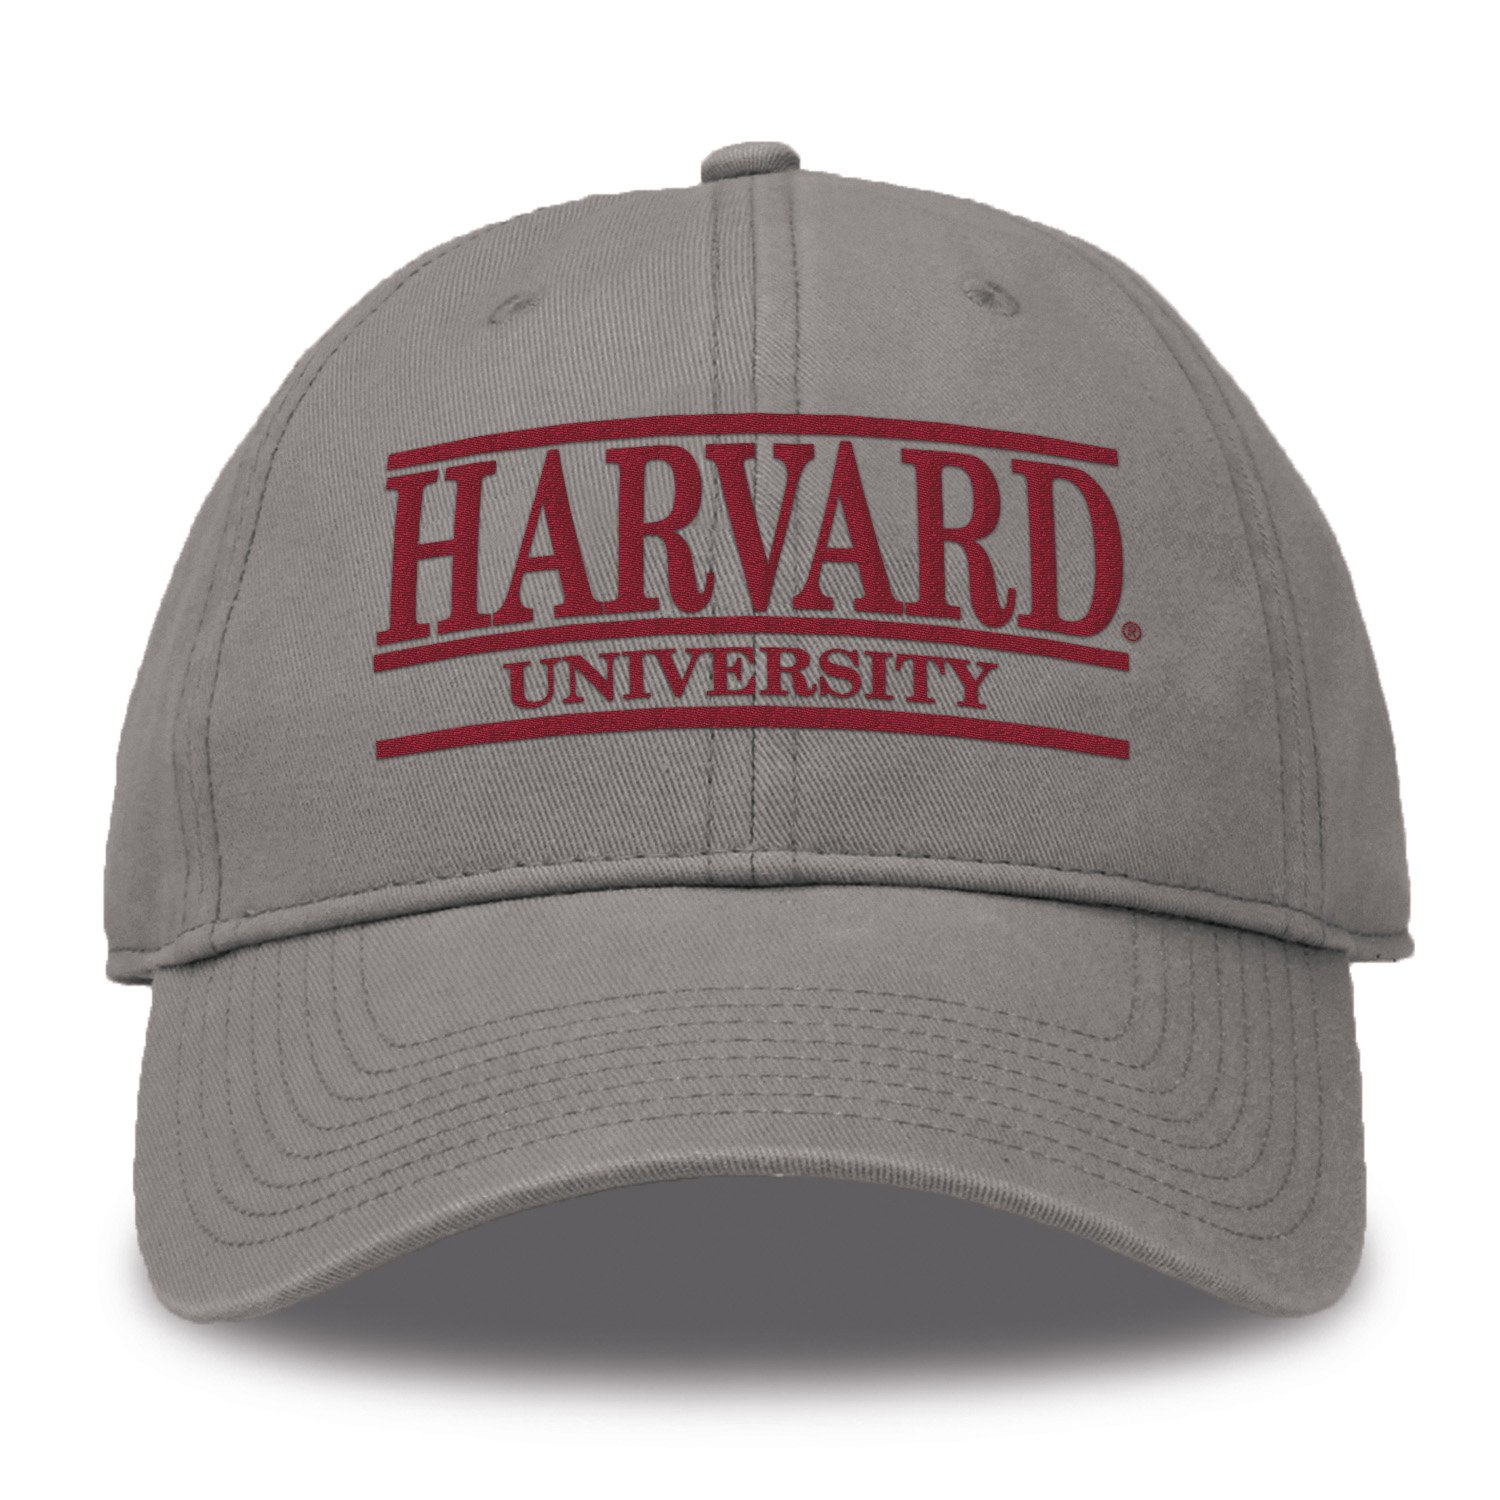 The Game NCAA Bar Design Classic Relaxed Twil Hat Adjustable